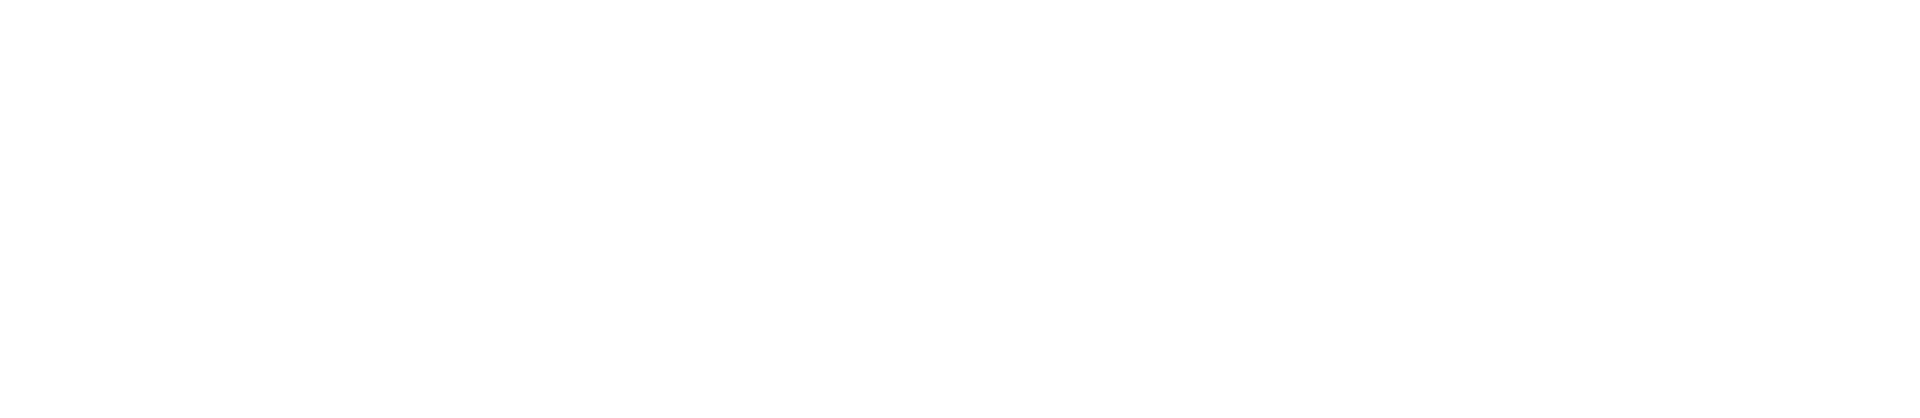 Astor Capital Fund